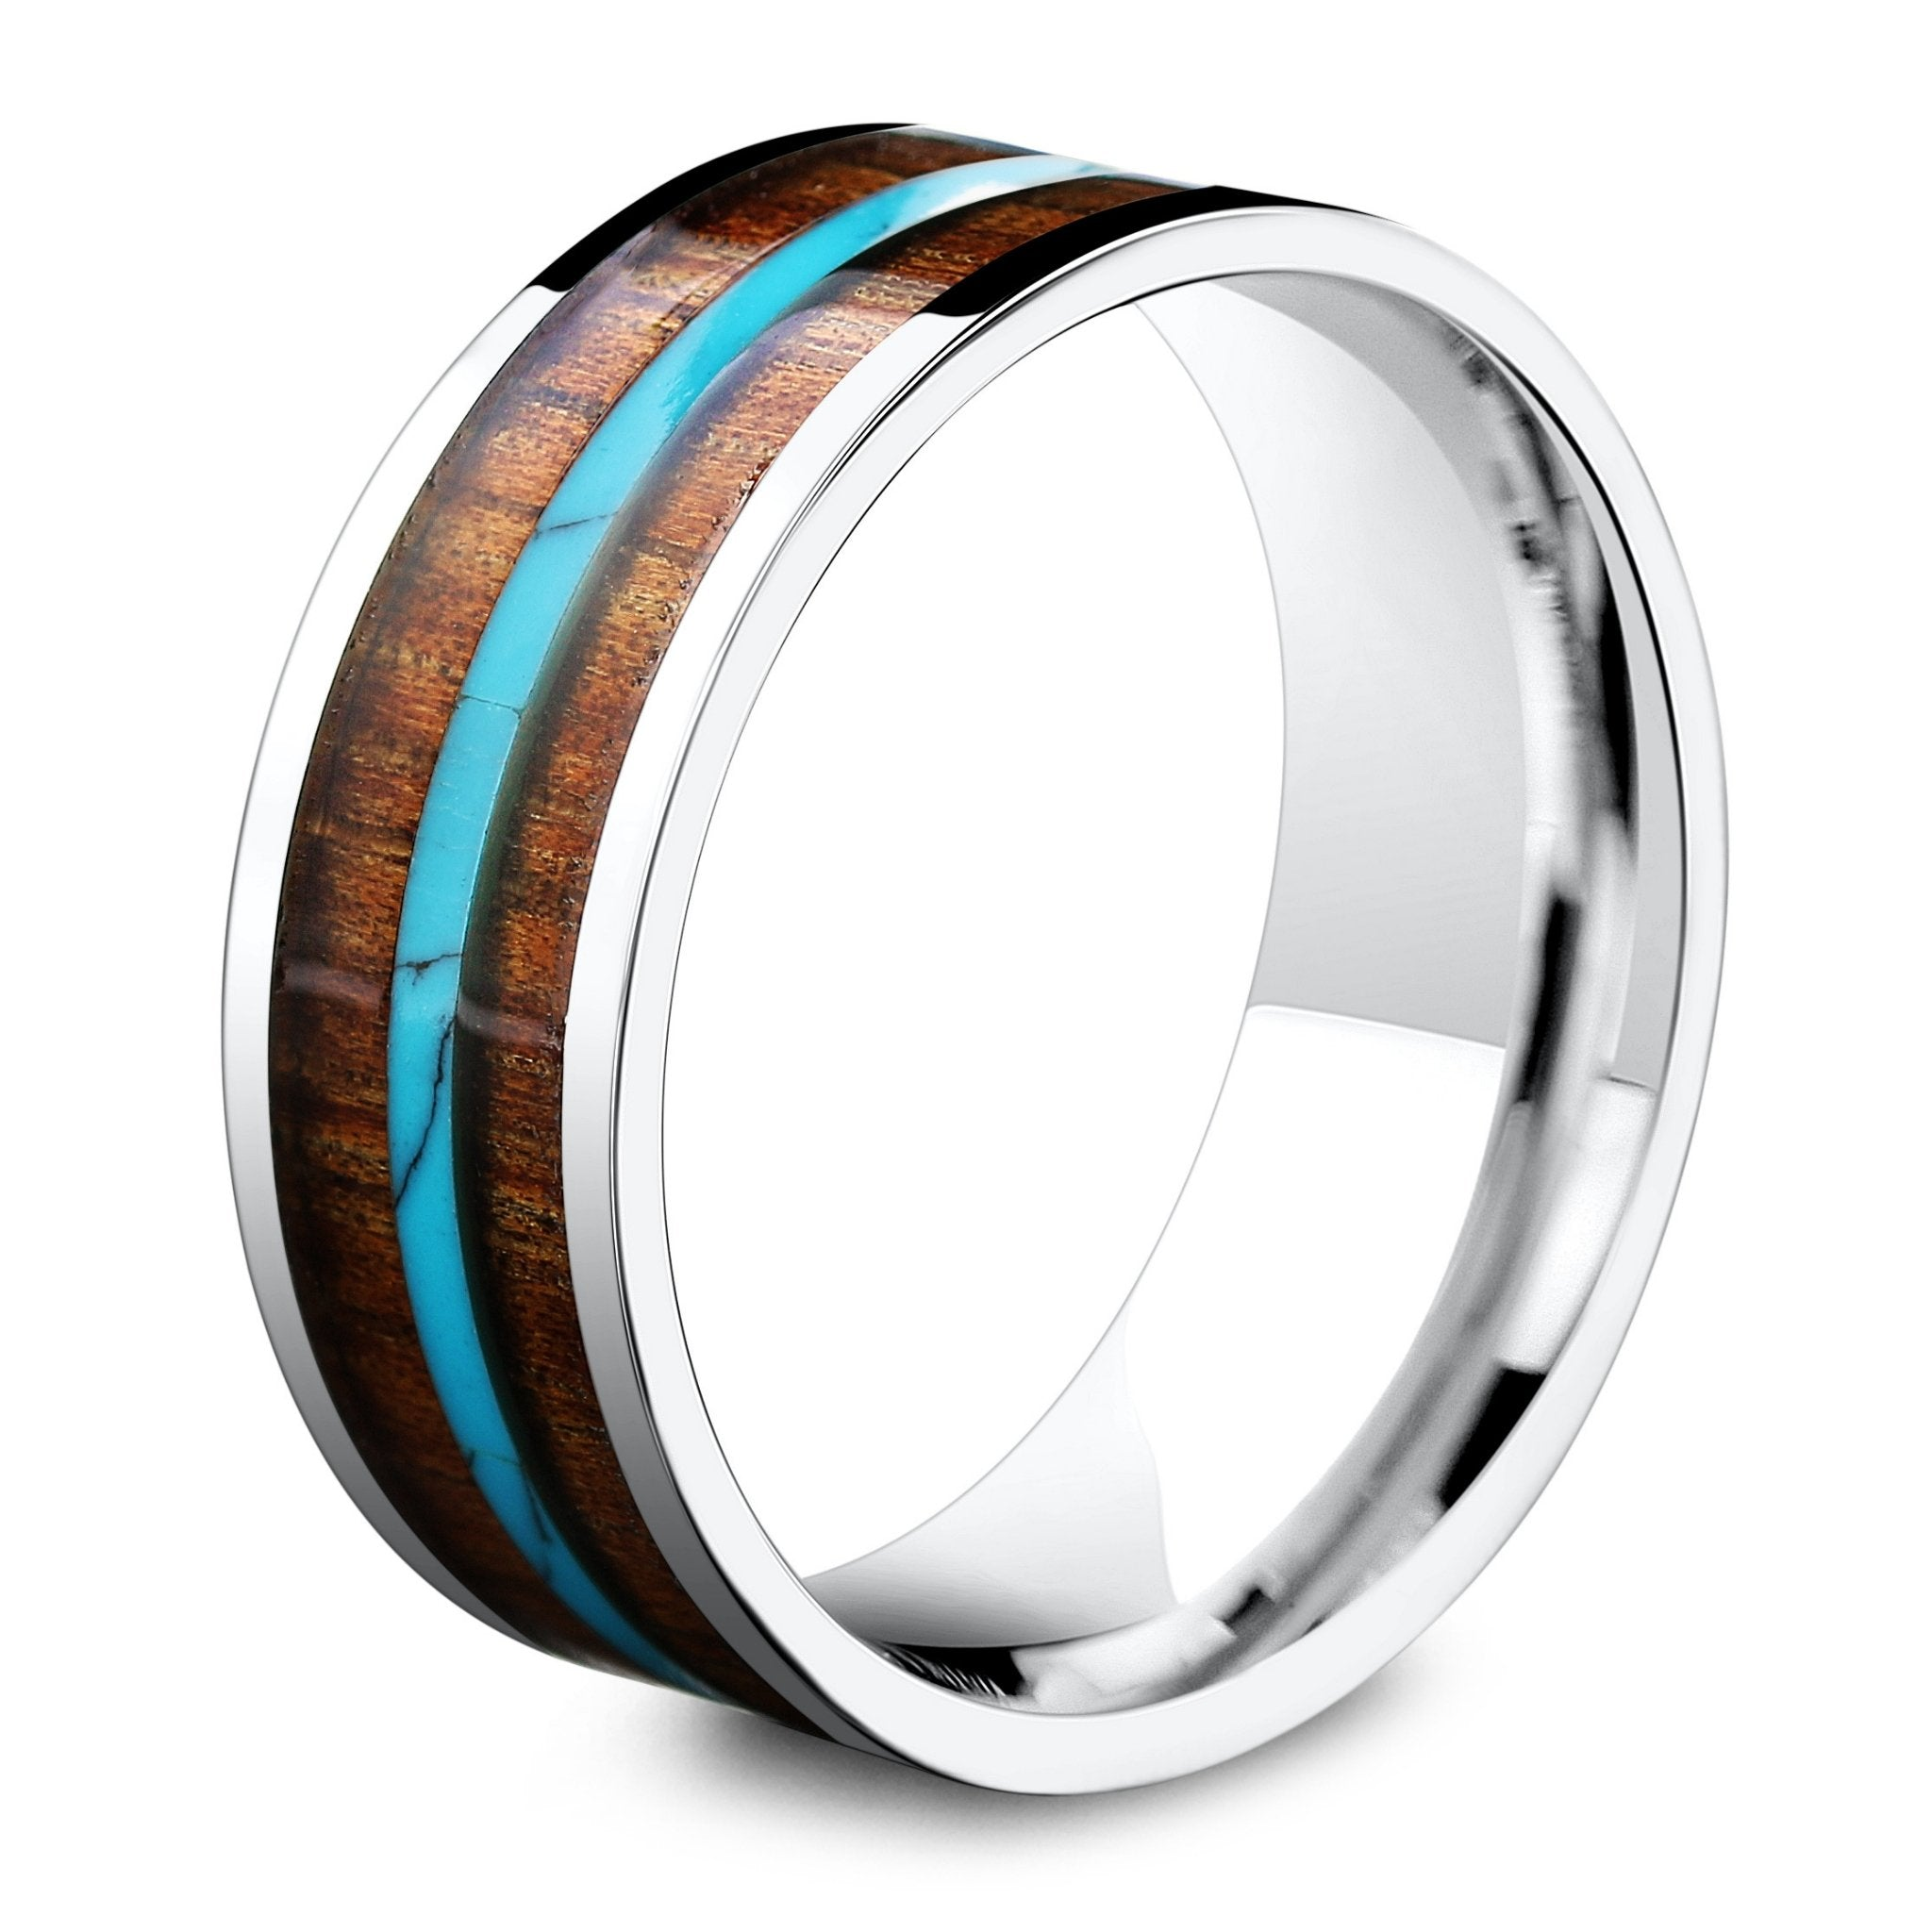 8mm Handcrafted Koa Wood Ring With A Beautiful Turquois Northern